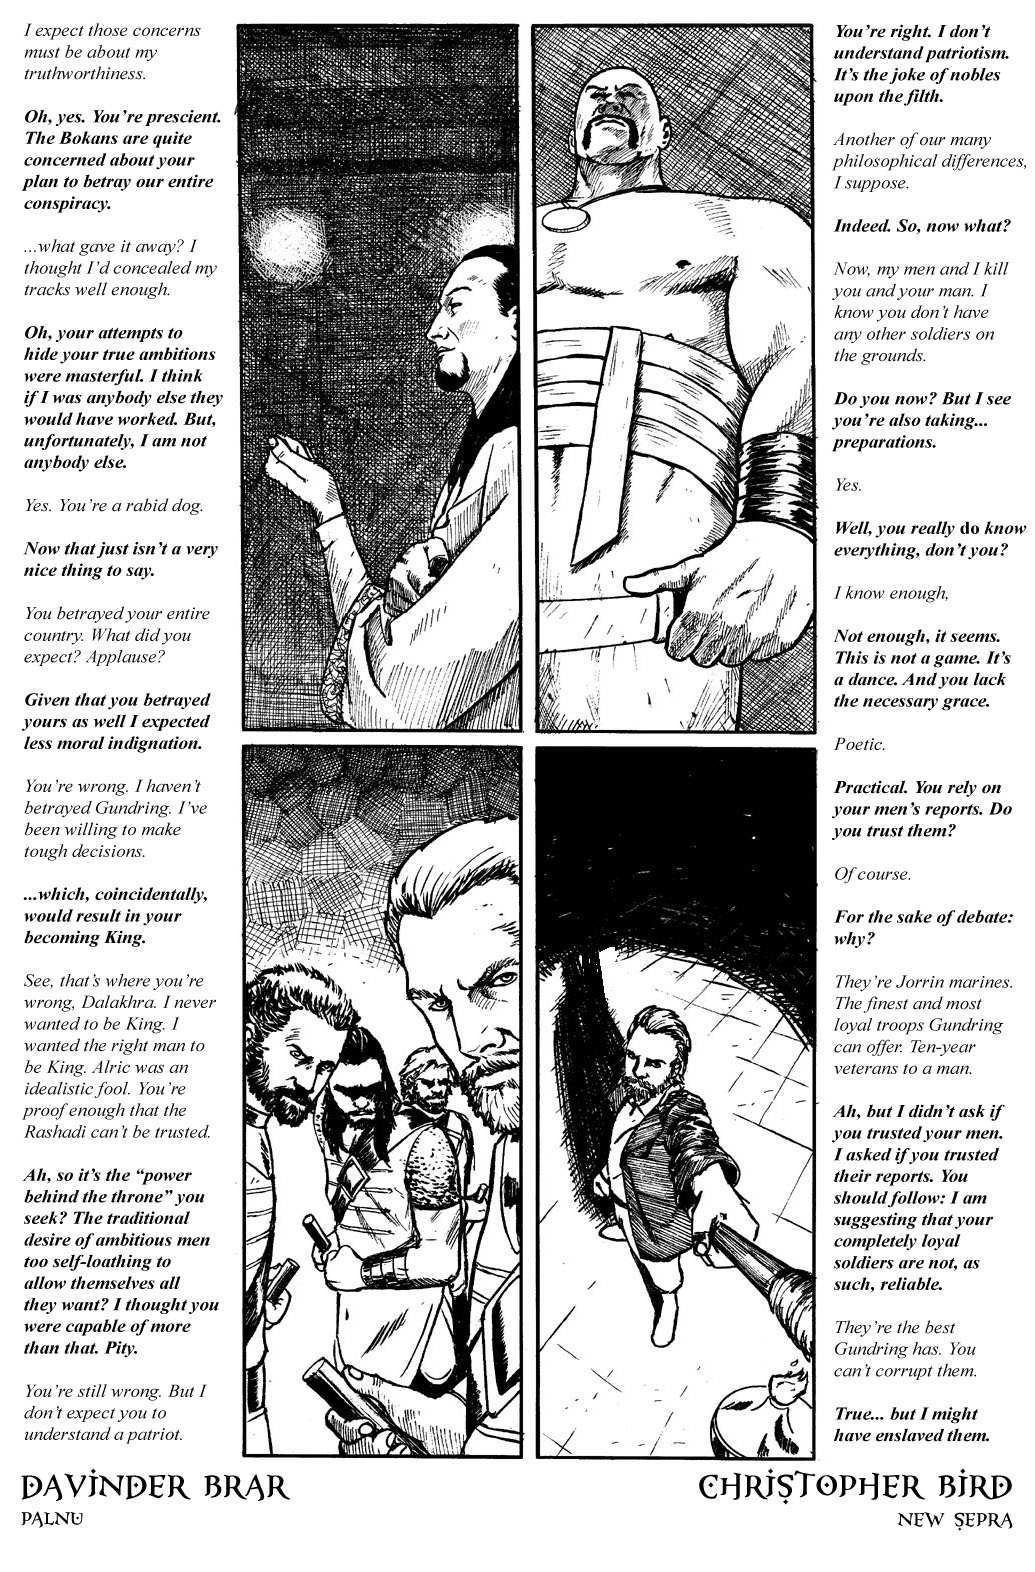 Book 3, page 21